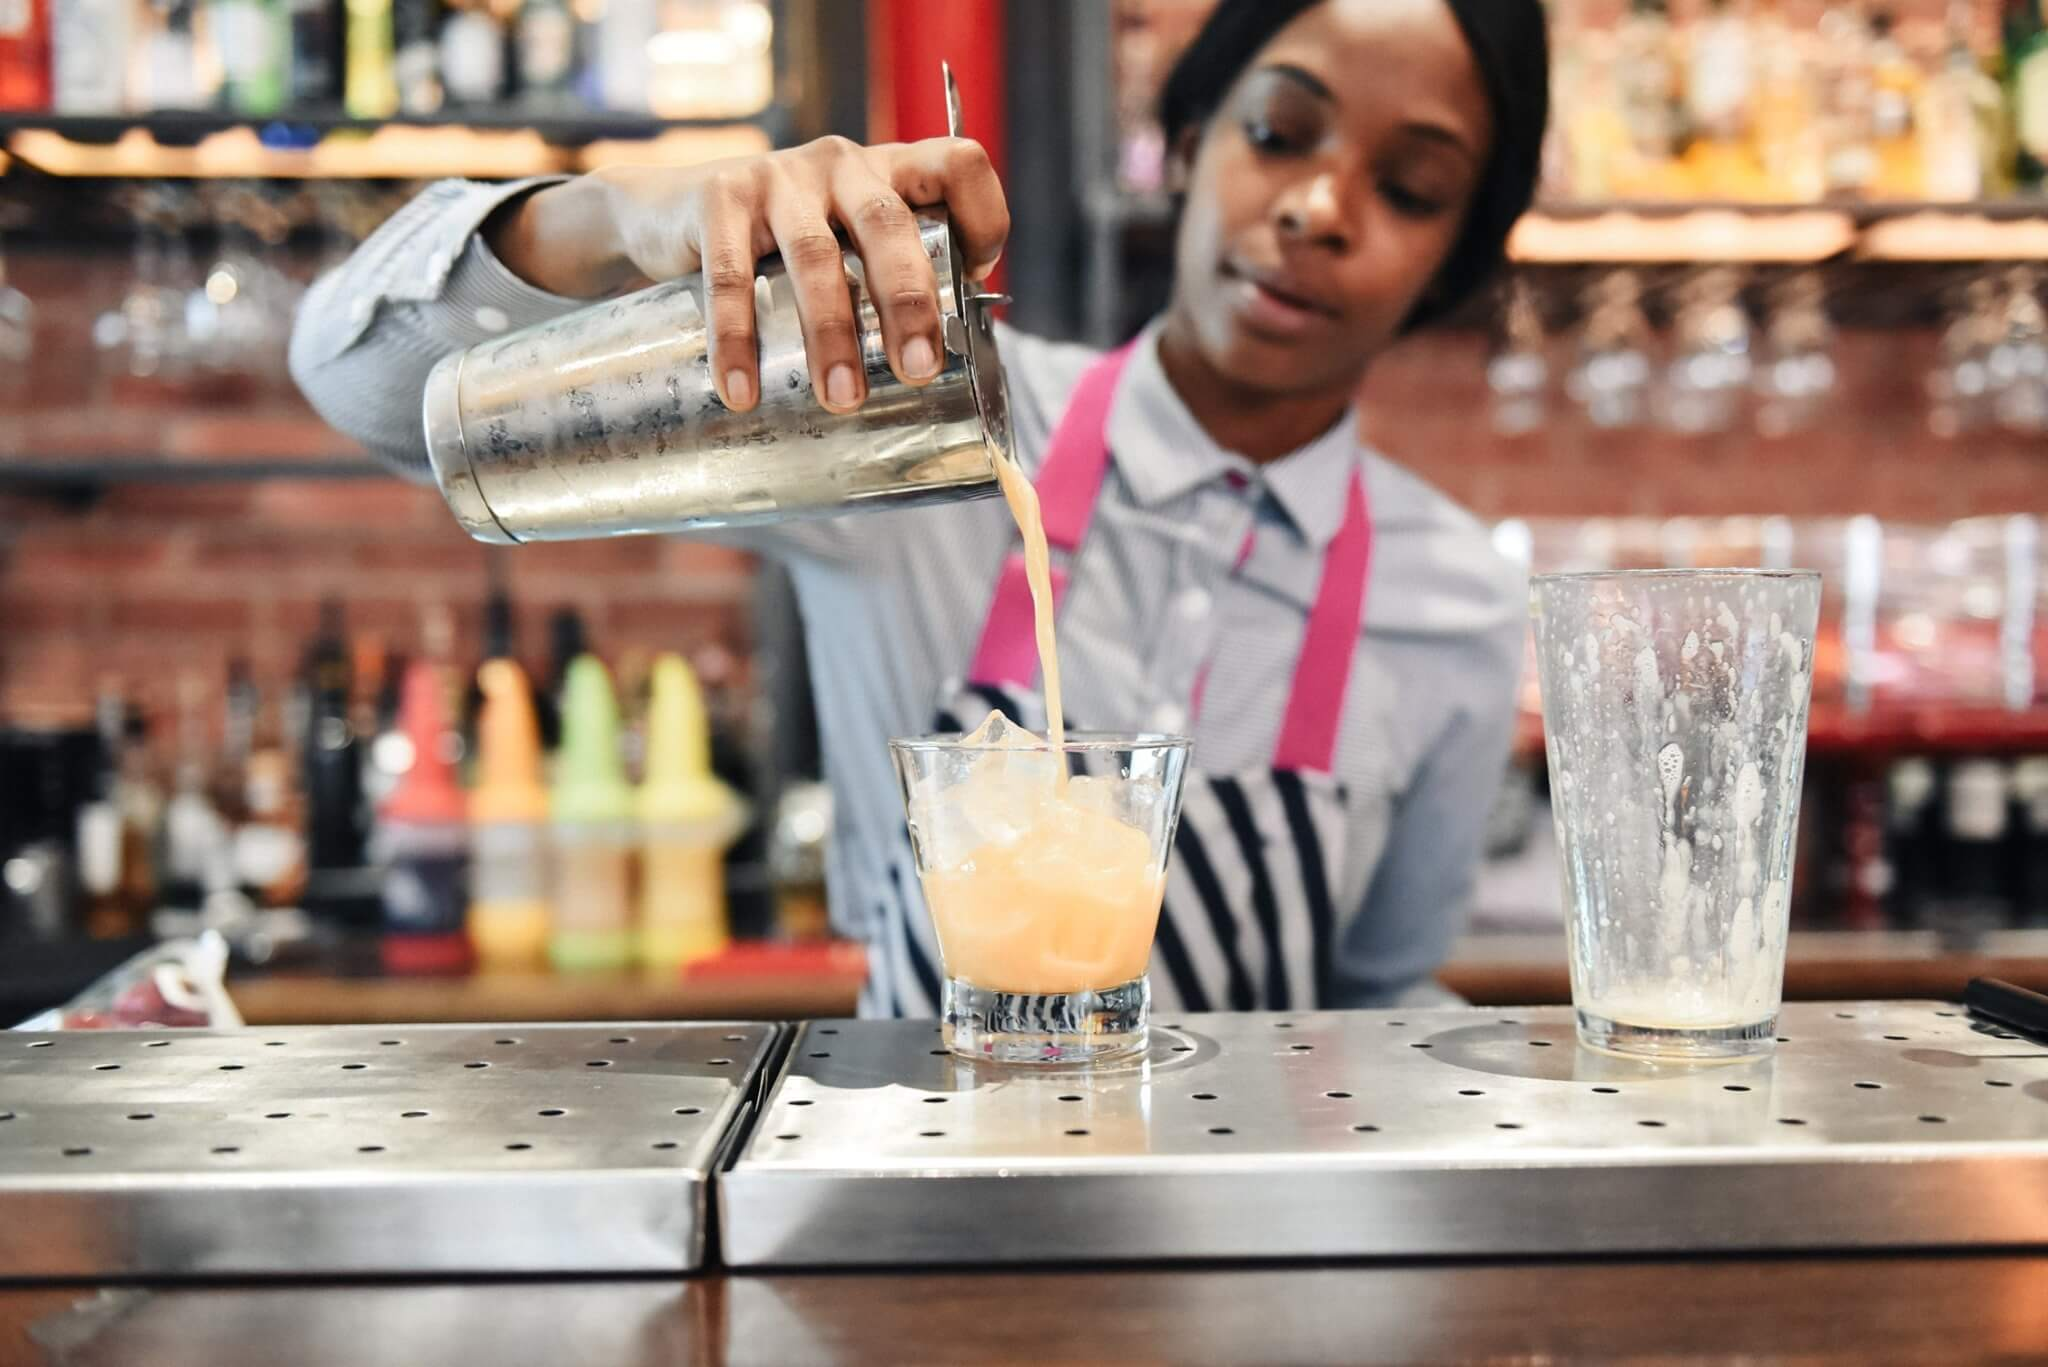 Bartender pouring a cocktail during Birmingham Cocktail Festival